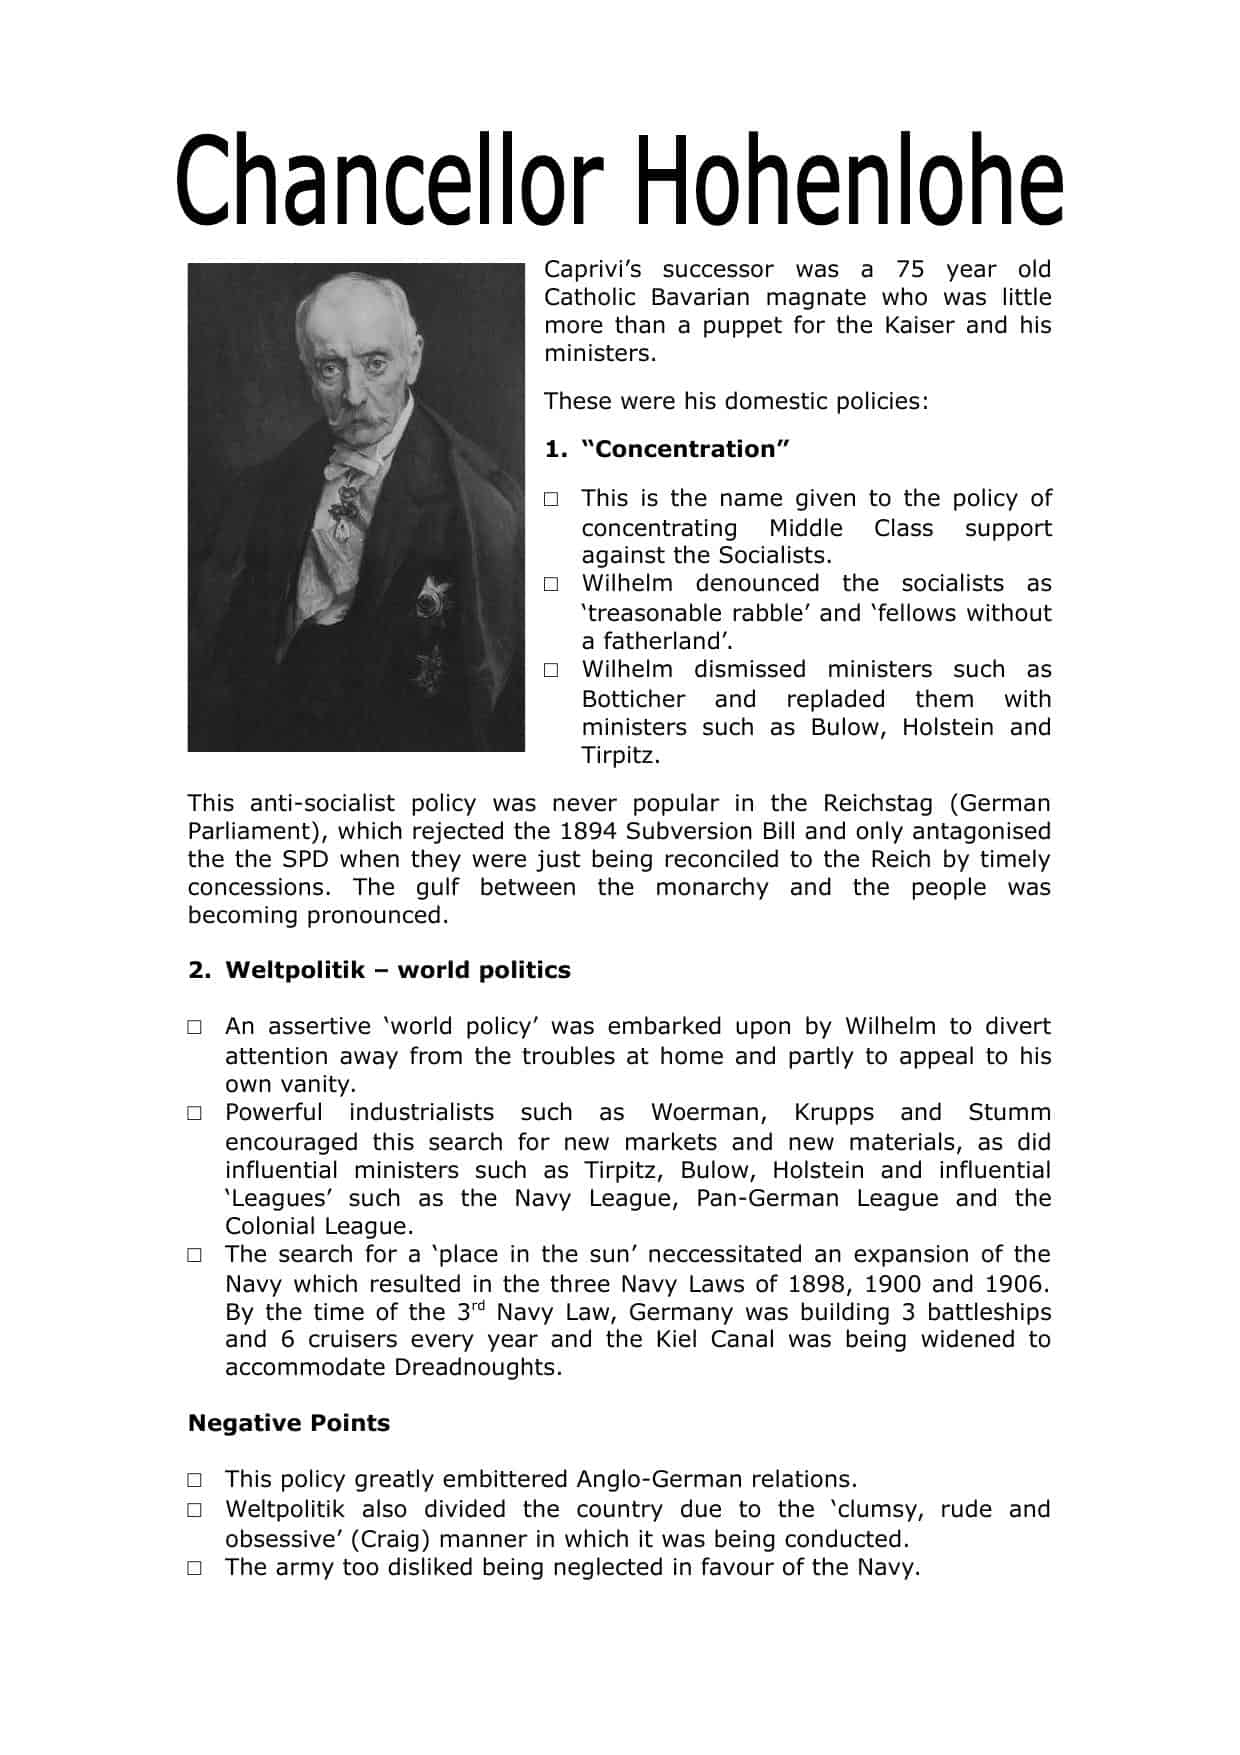 History Of Germany Worksheets